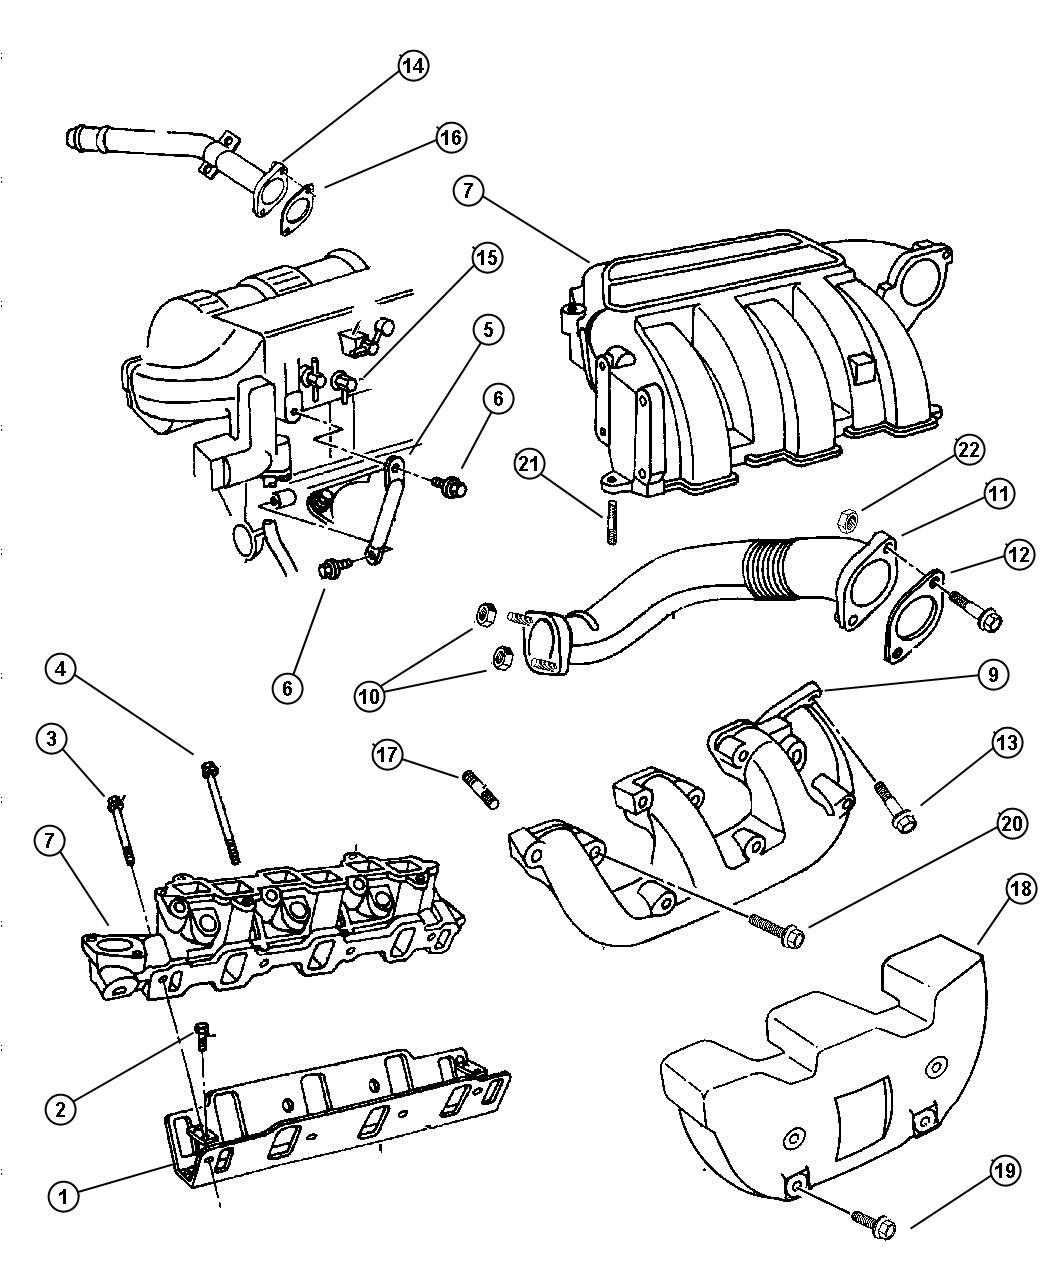 [DIAGRAM] 1990 Plymouth Voyager Engine Diagram FULL